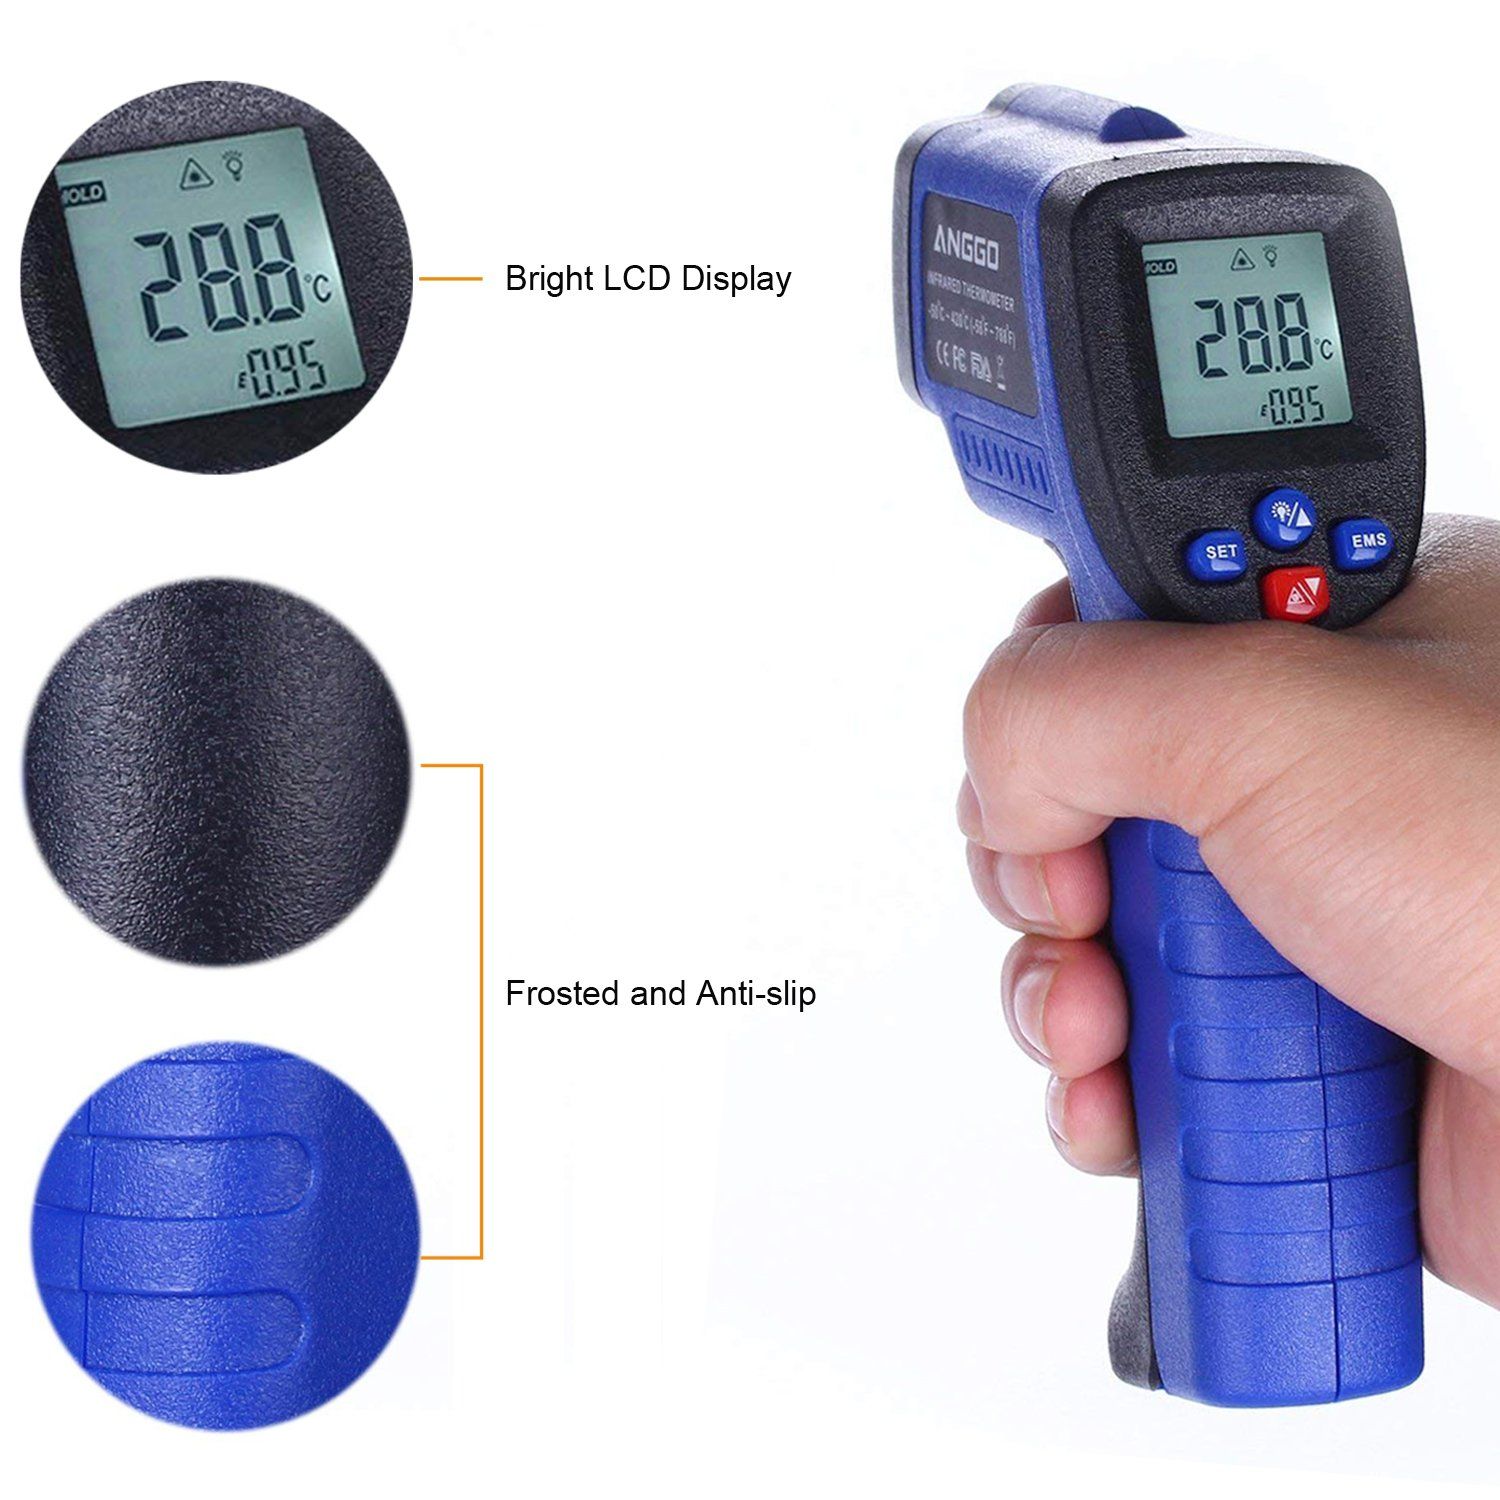 ANGGO Non-contact Digital Infrared Thermometer Temperature Gun with EMS Adjustable (-58 °F to 788°F) by ANGGO (Image #5)